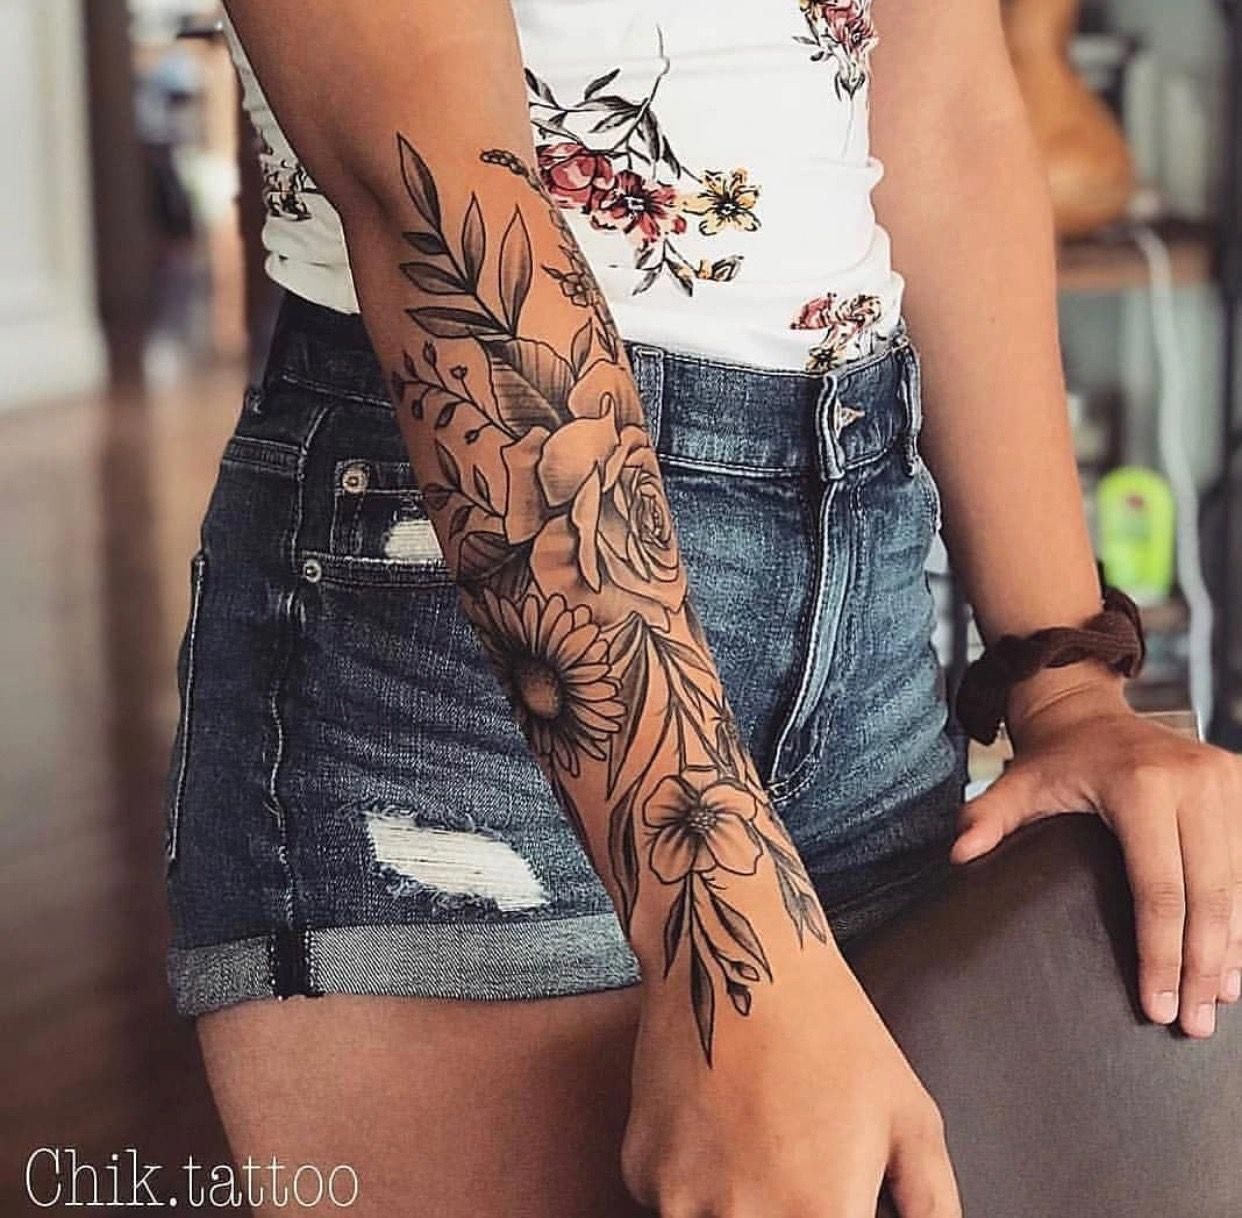 Half Sleeve Tattoos Designs Halfsleevetattoos Girlfriend Tattoos Floral Tattoo Design Arm Tattoos For Women